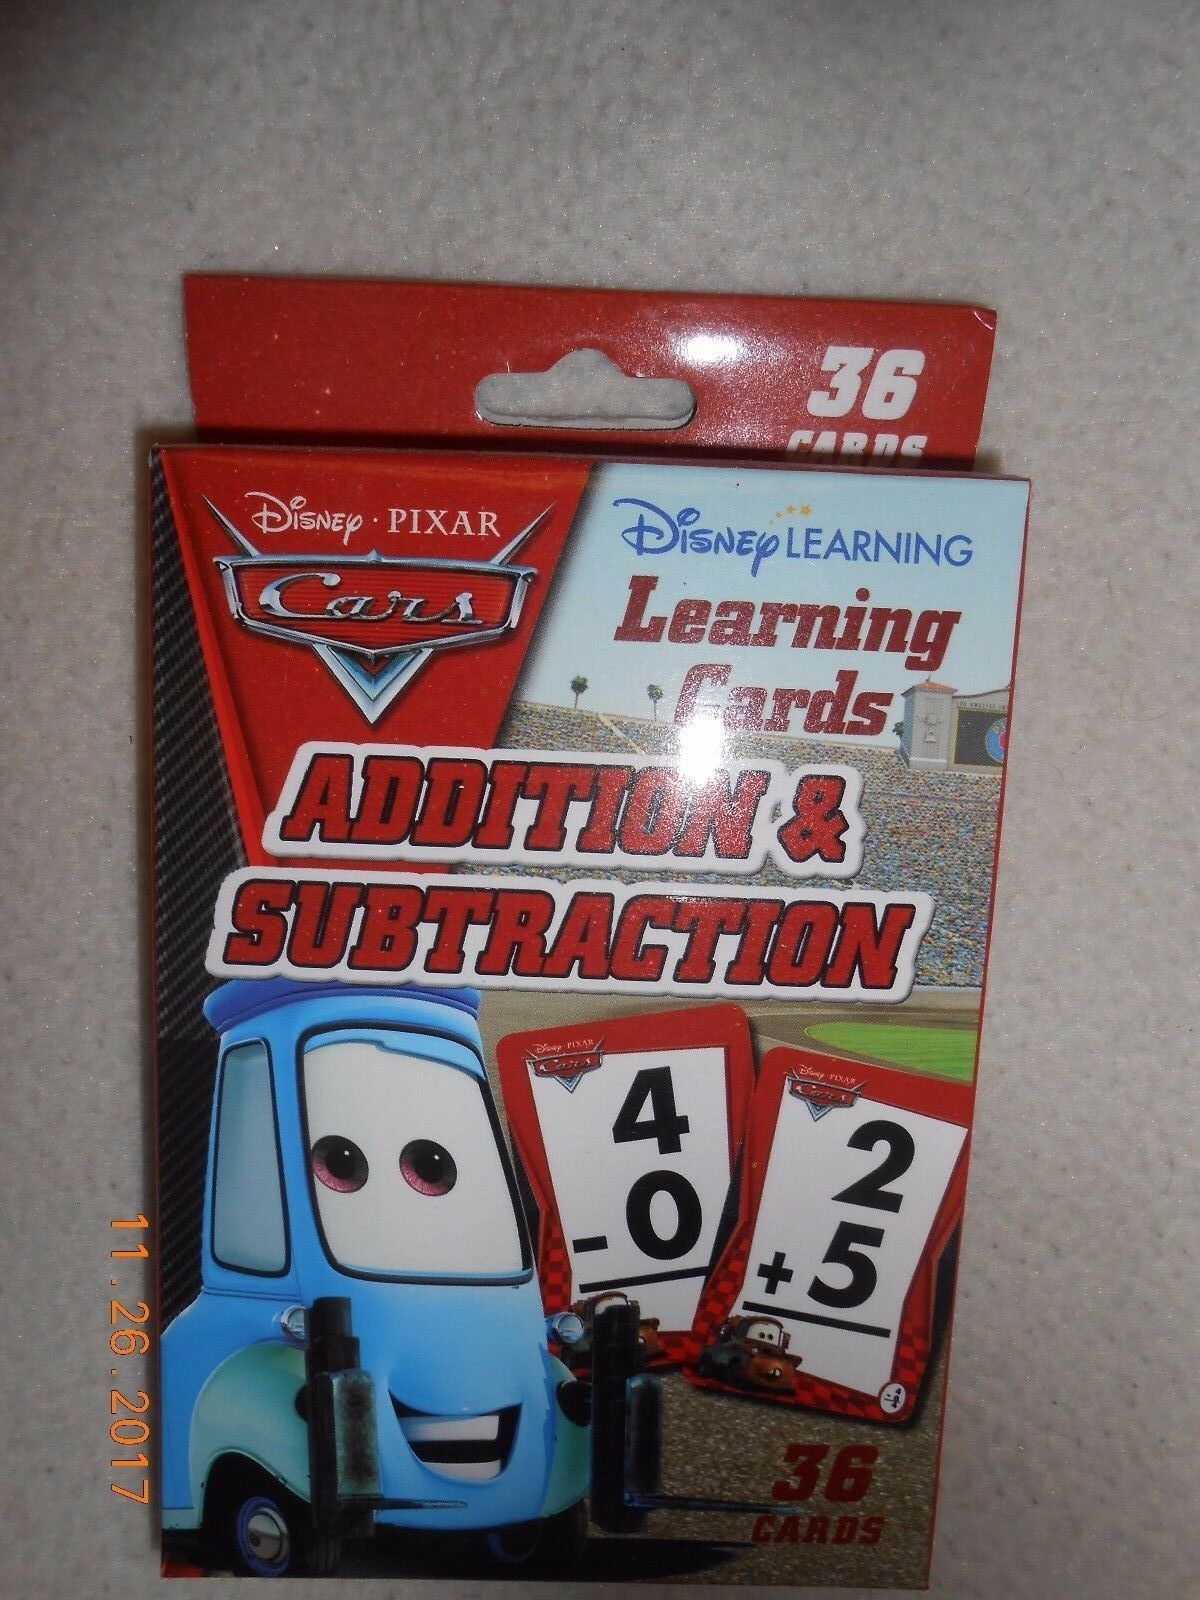 New Disney Pixar Cars 36 Cards Addition & Subtraction w/ answers Stocking Stuffe image 3